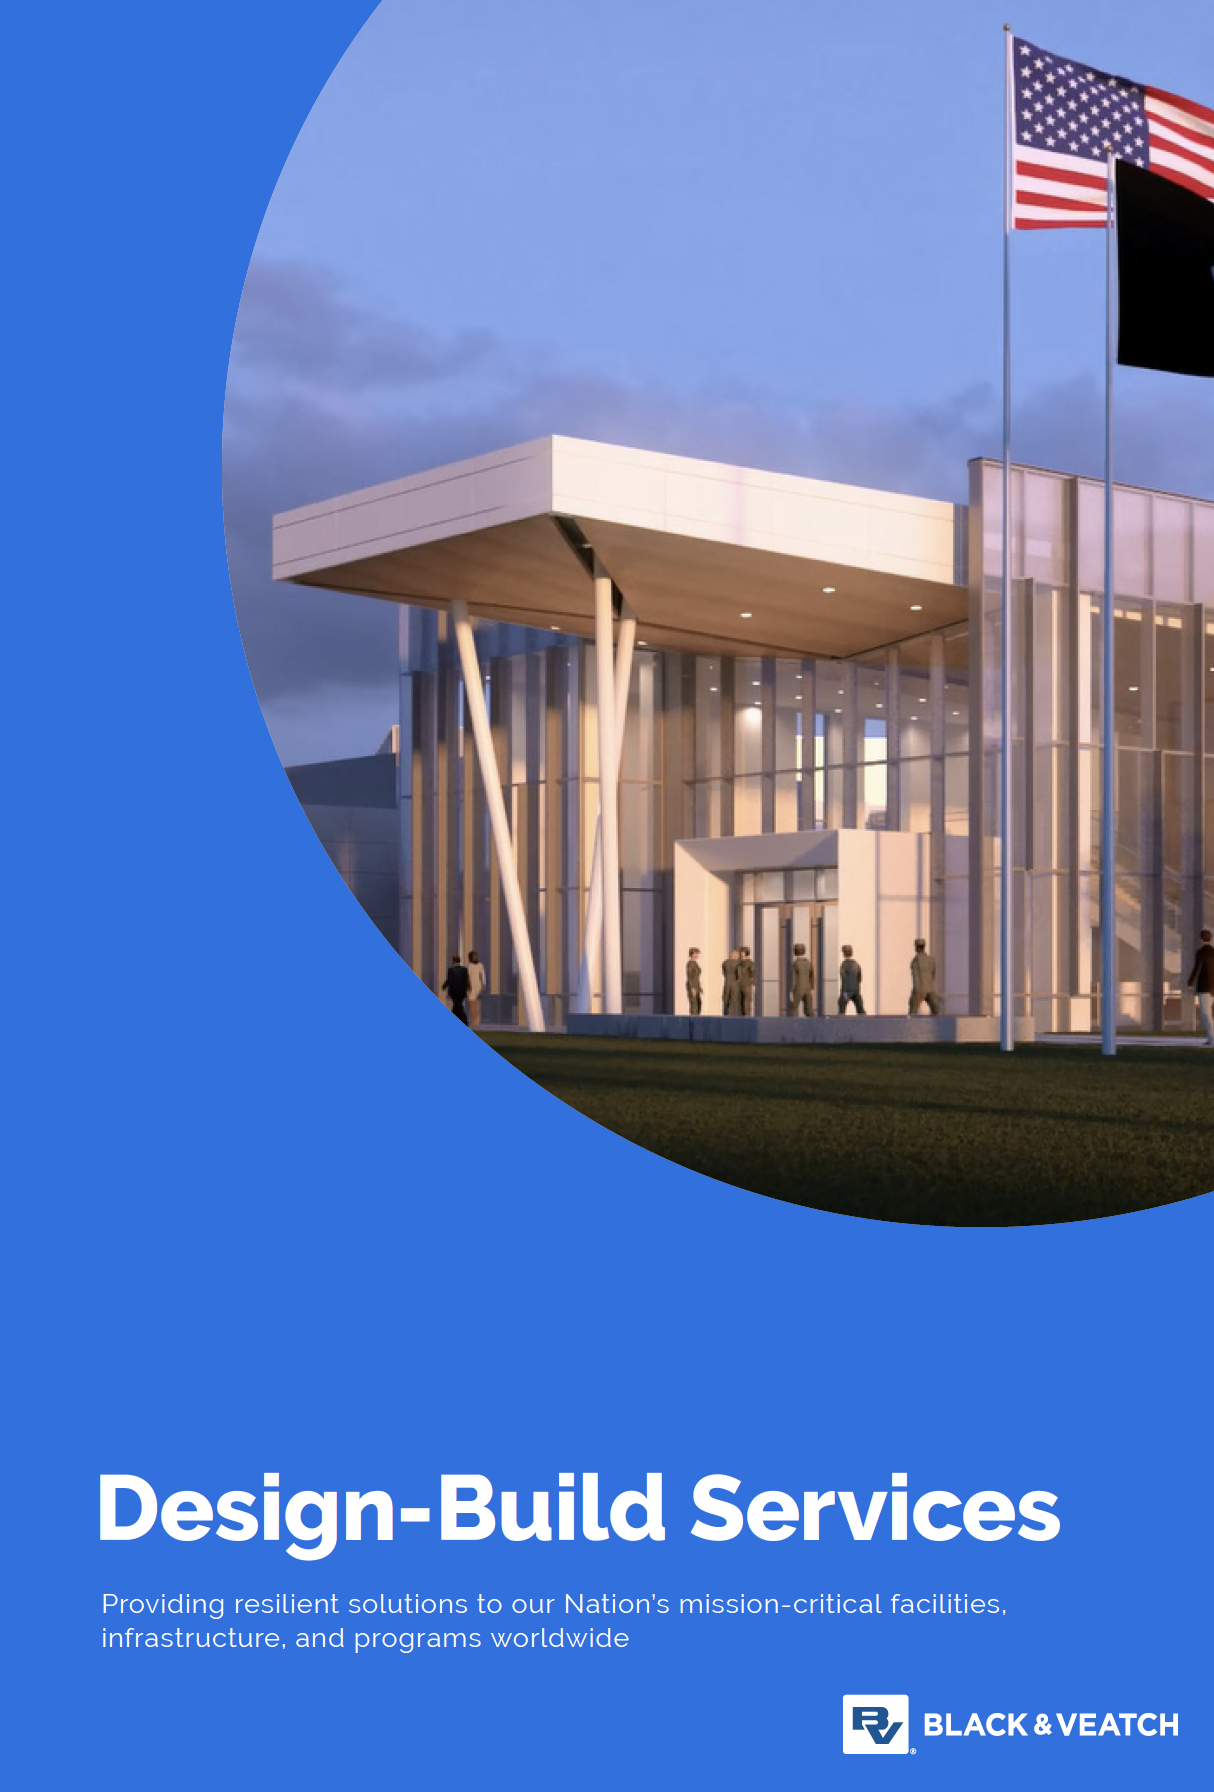 Design-Build Services